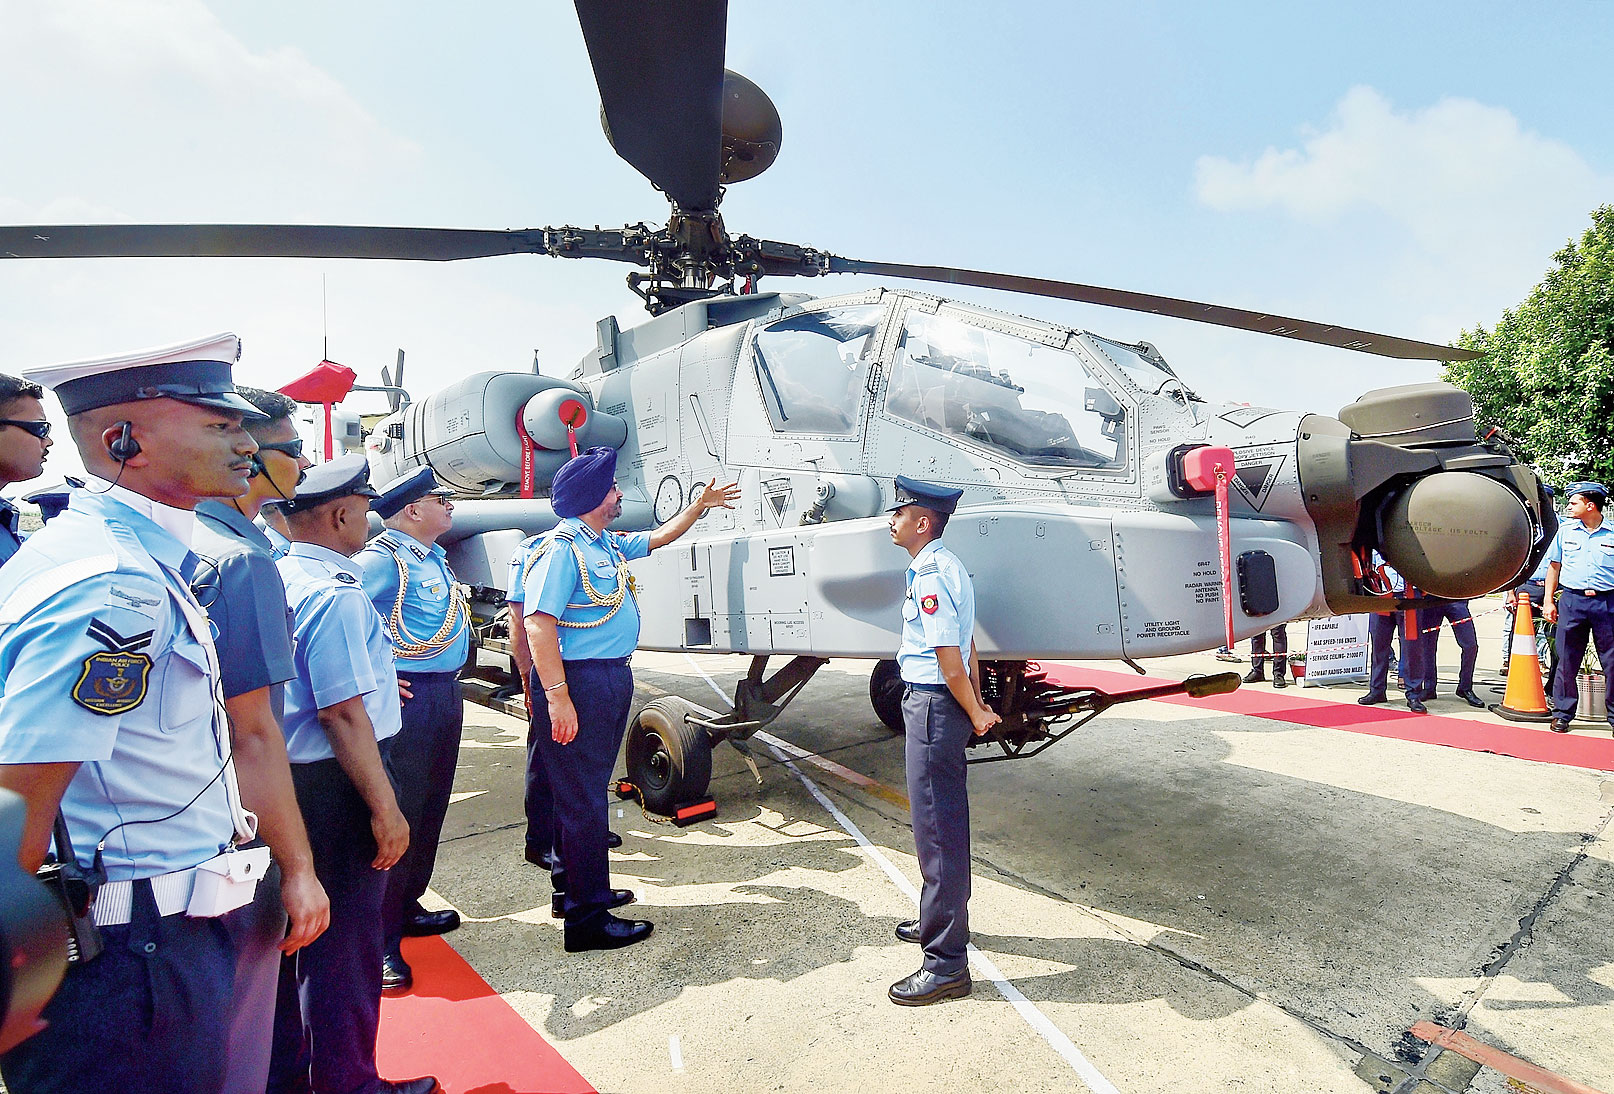 Air Chief Marshal BS Dhanoa inspects one of the eight US-made Apache AH-64E helicopters that were inducted into the IAF at the air force station in Pathankot on Tuesday.